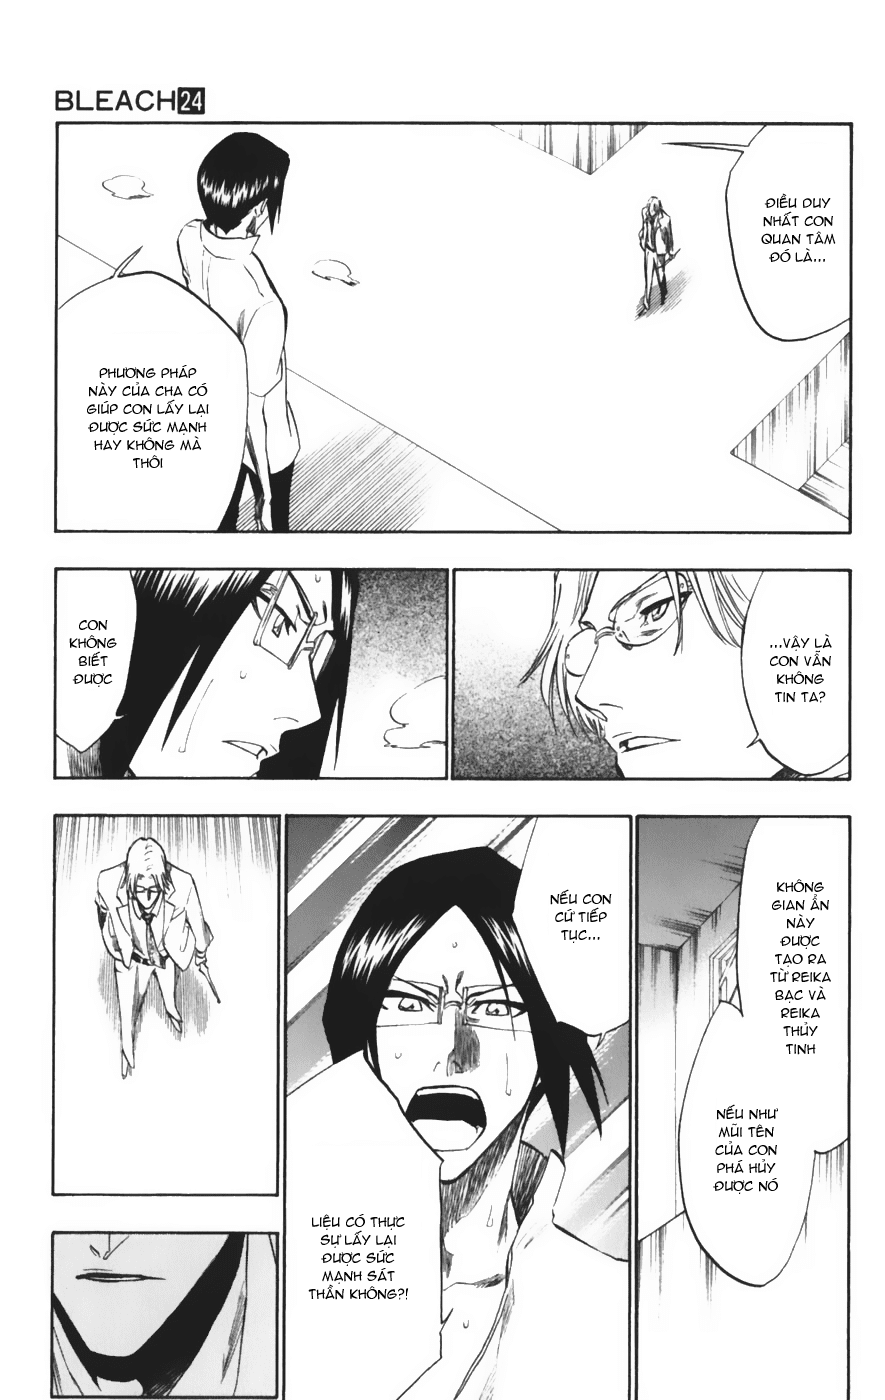 Bleach chapter 204 trang 4